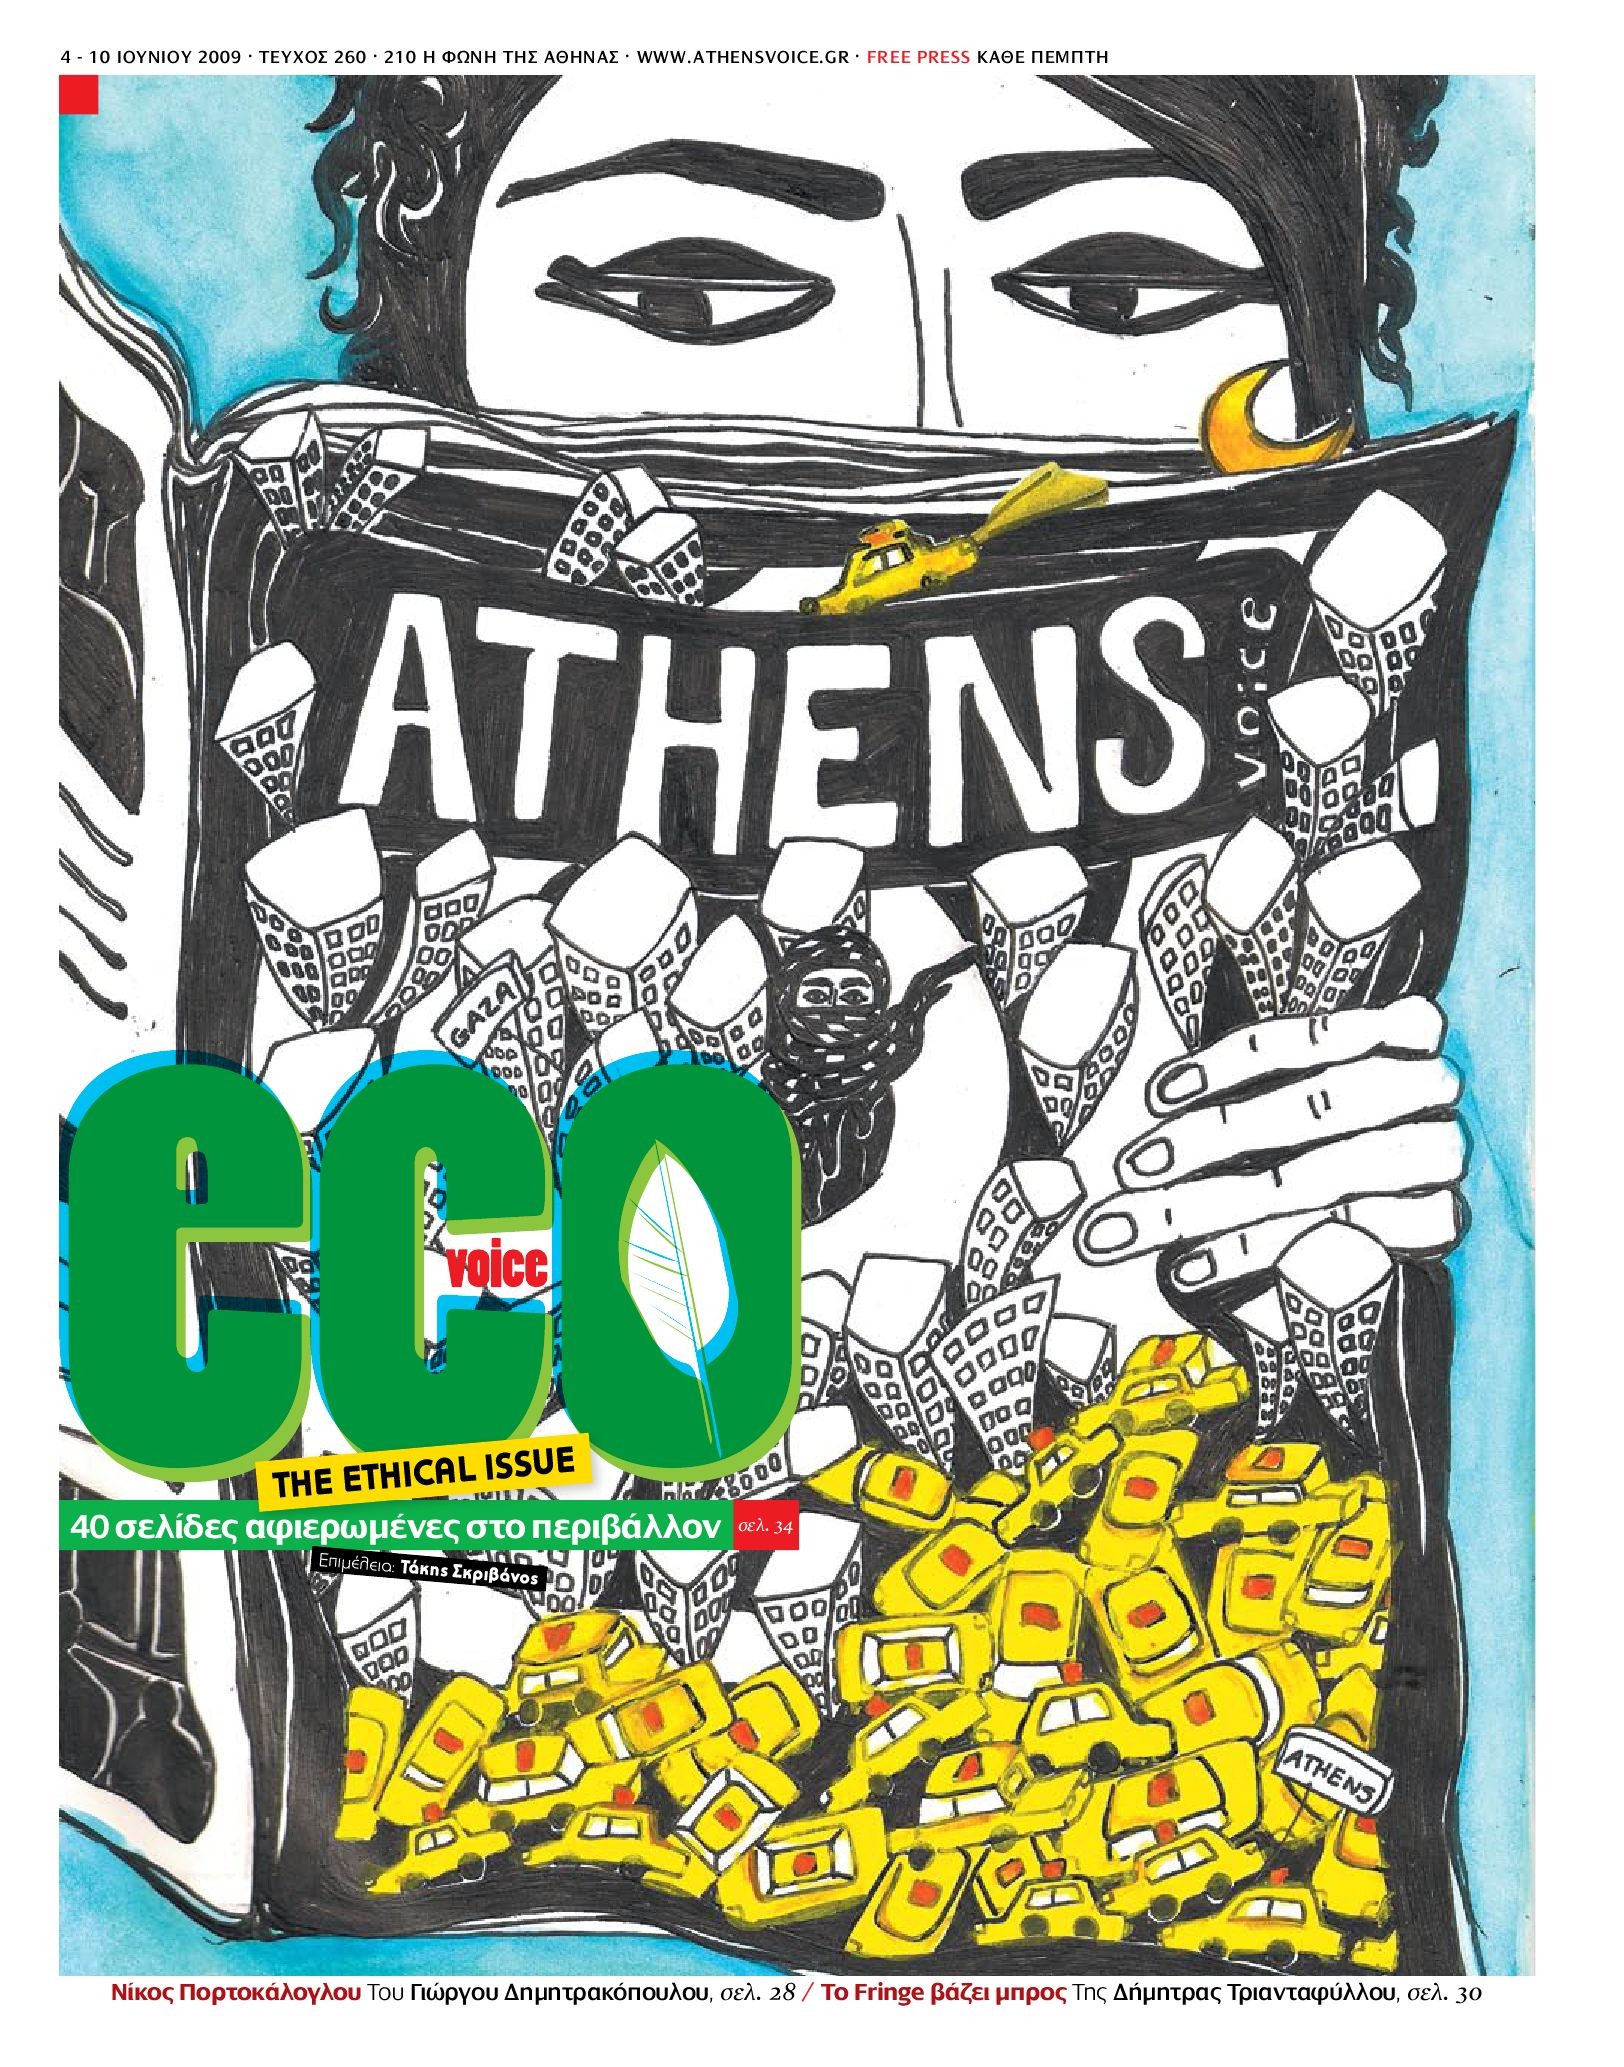 812200c83fbc Athens Voice 260 by Athens Voice - issuu